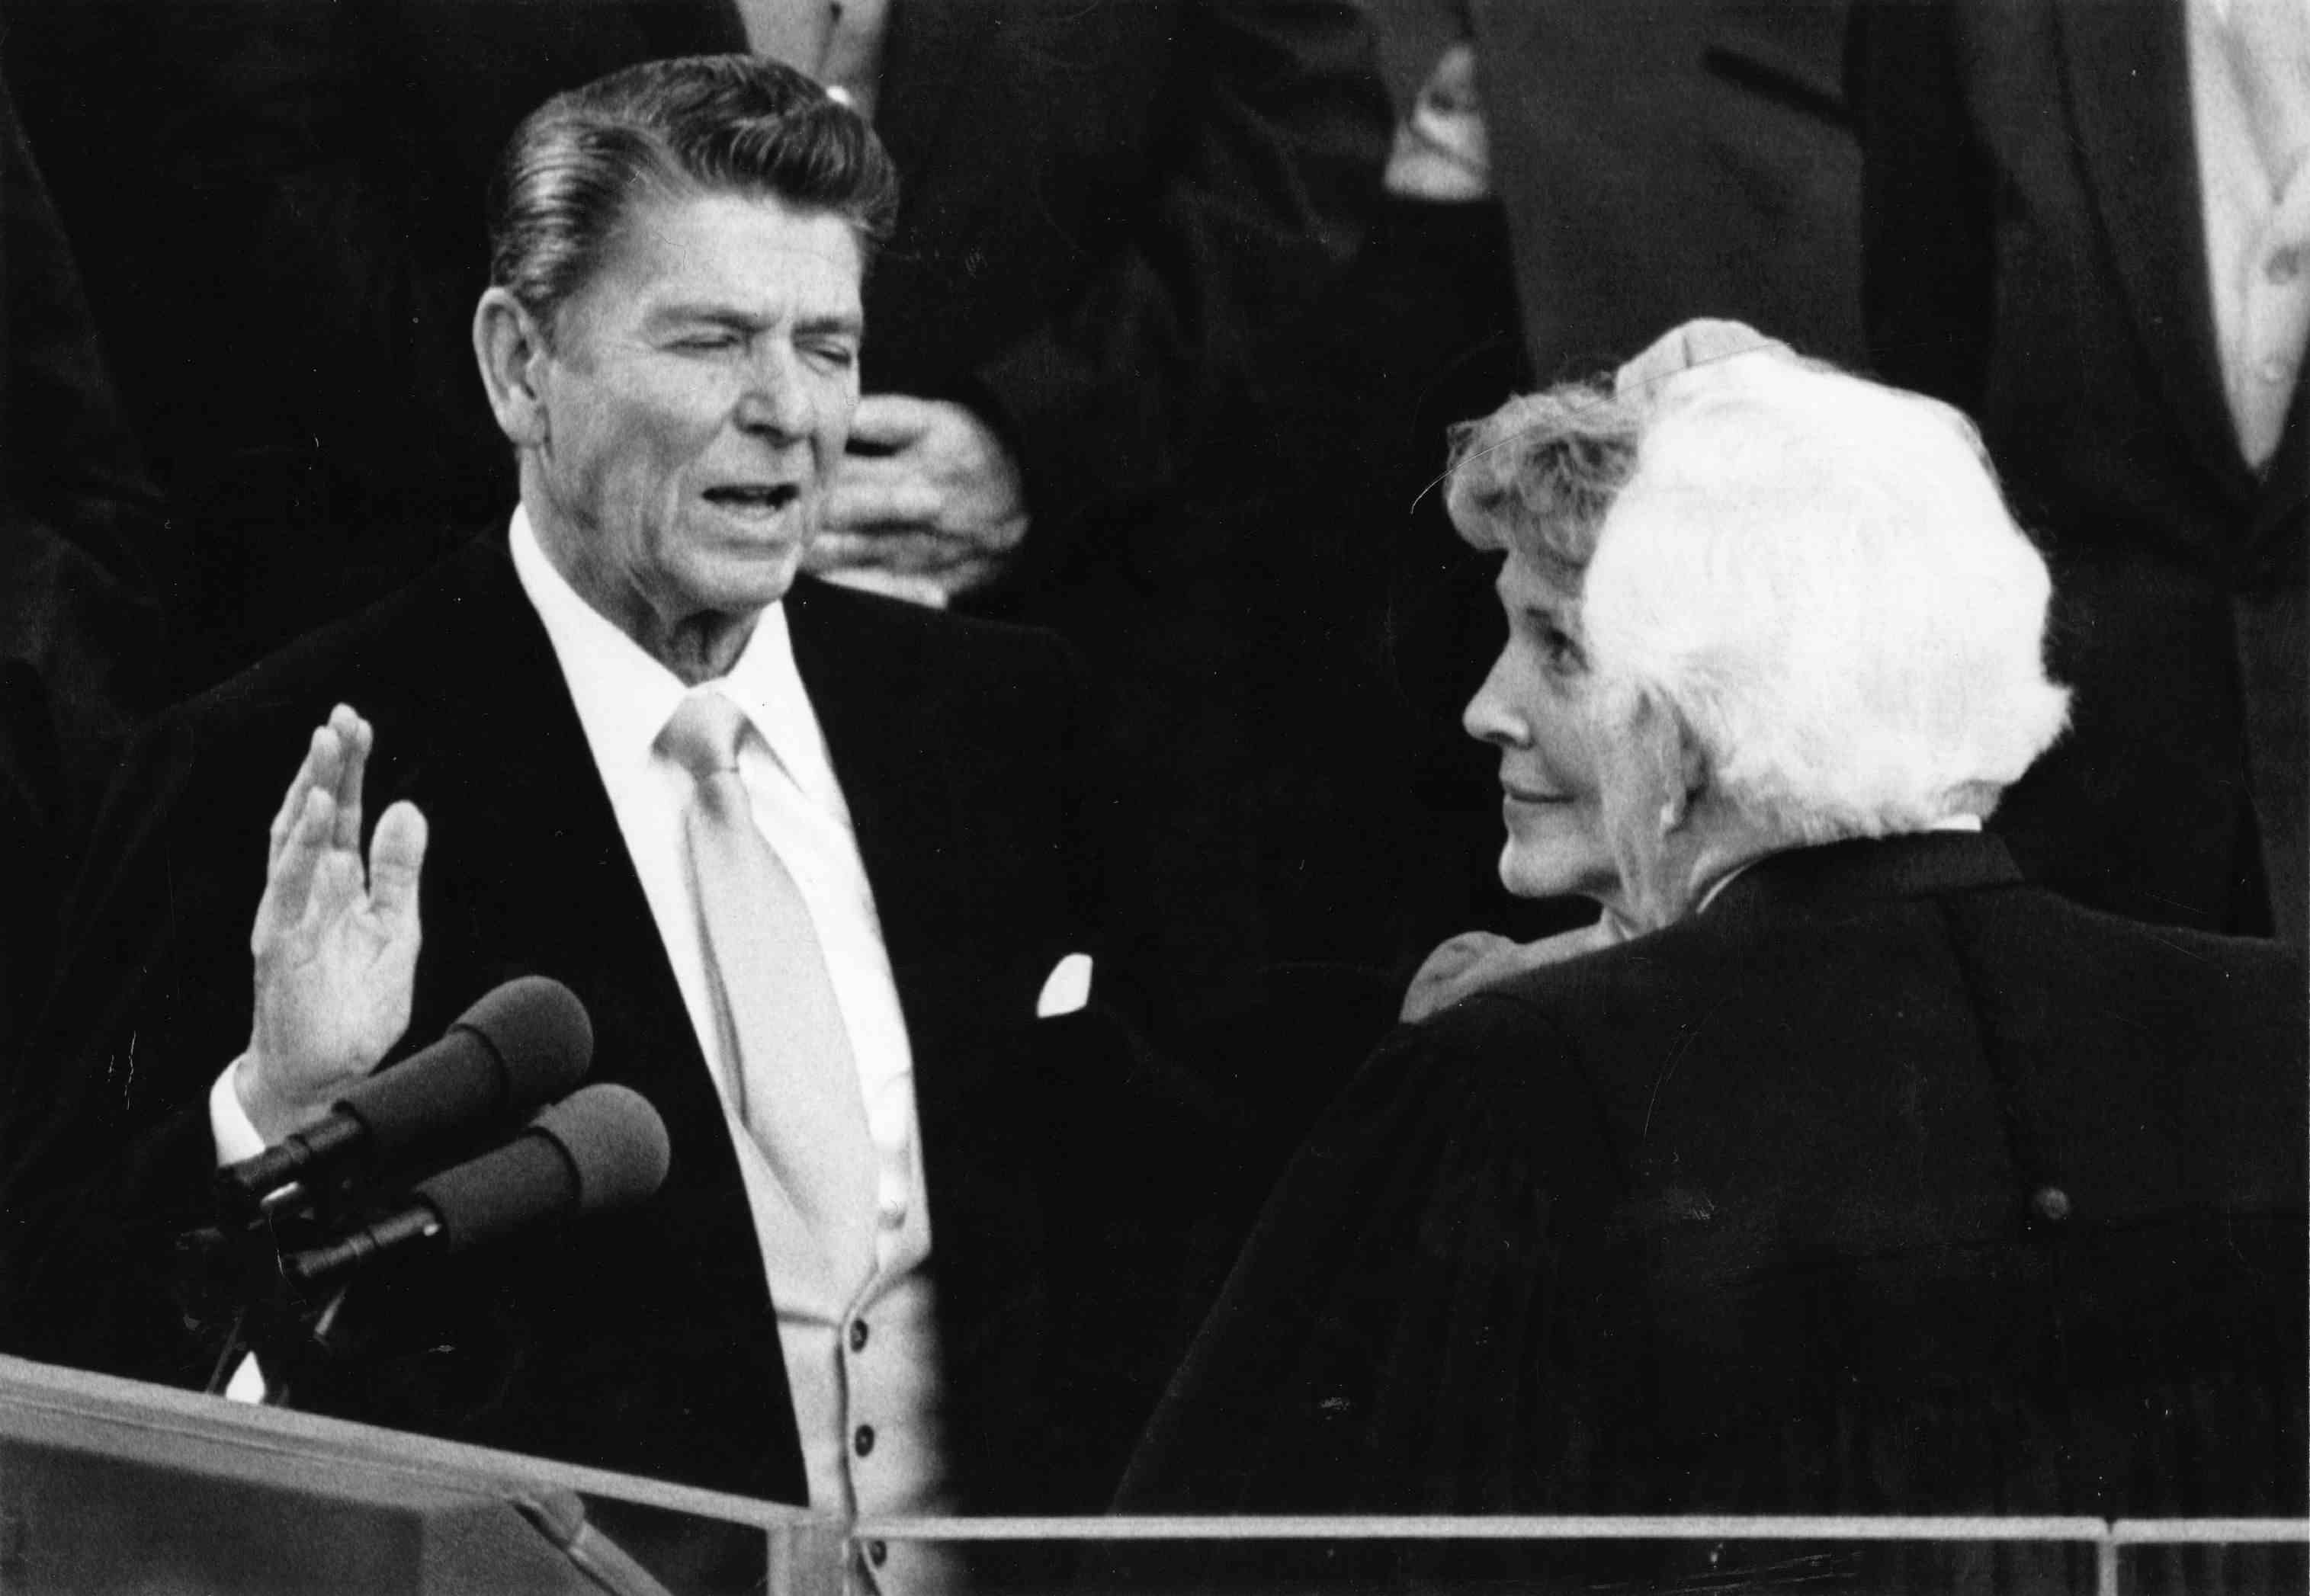 Ronald Reagan taking the oath of office